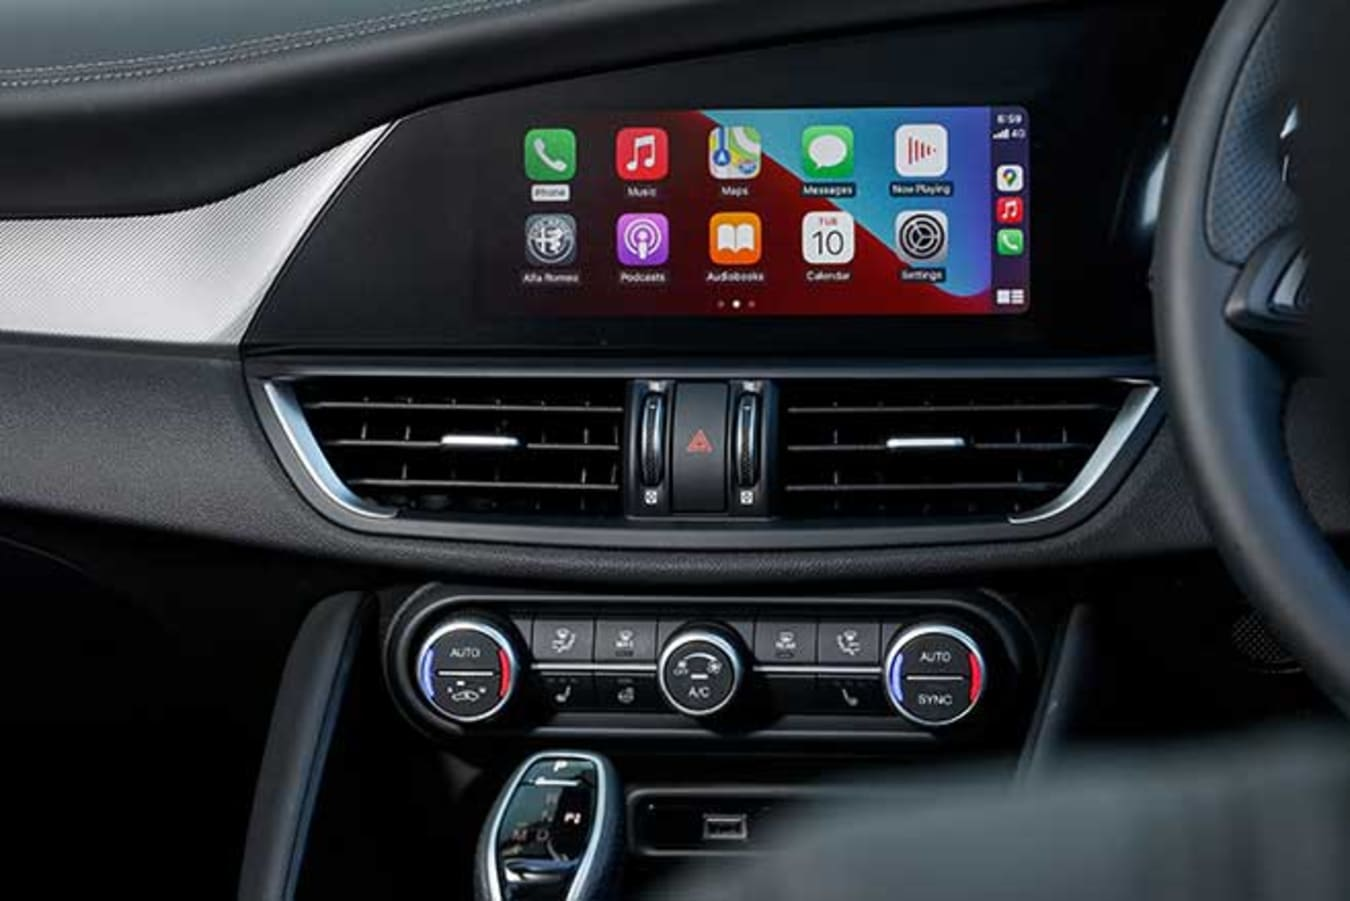 Apple CarPlay is controlled by the 8.8-inch touchscreen.